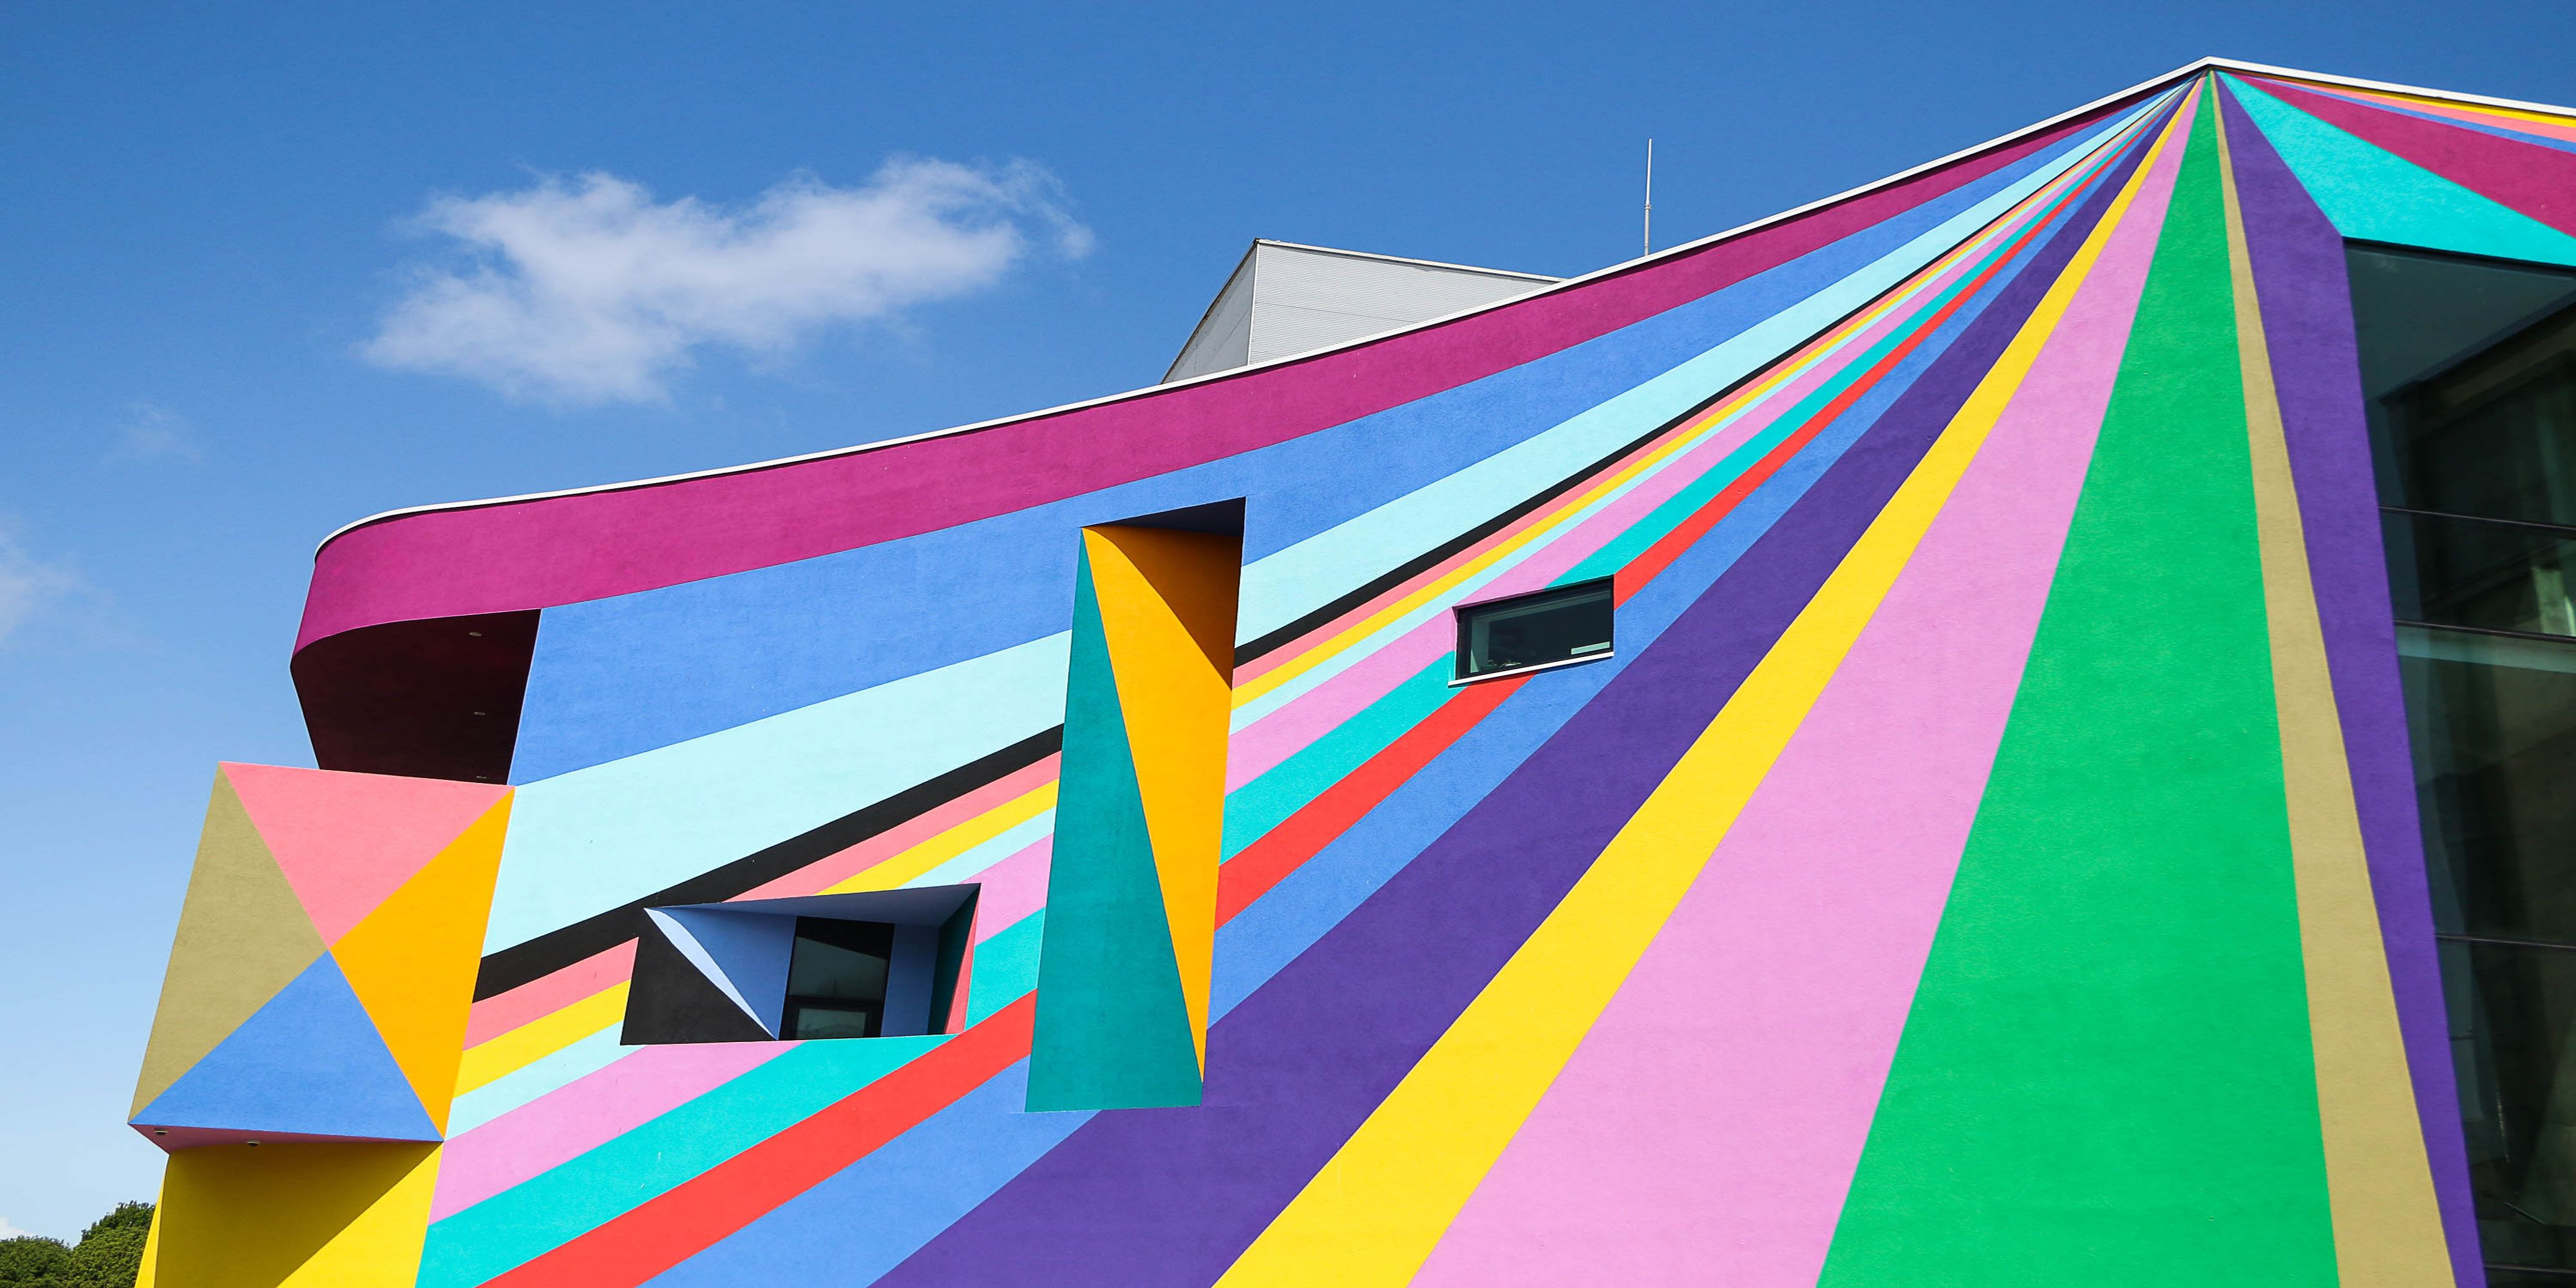 Towner Art Gallery has been transformed into a radiant artwork